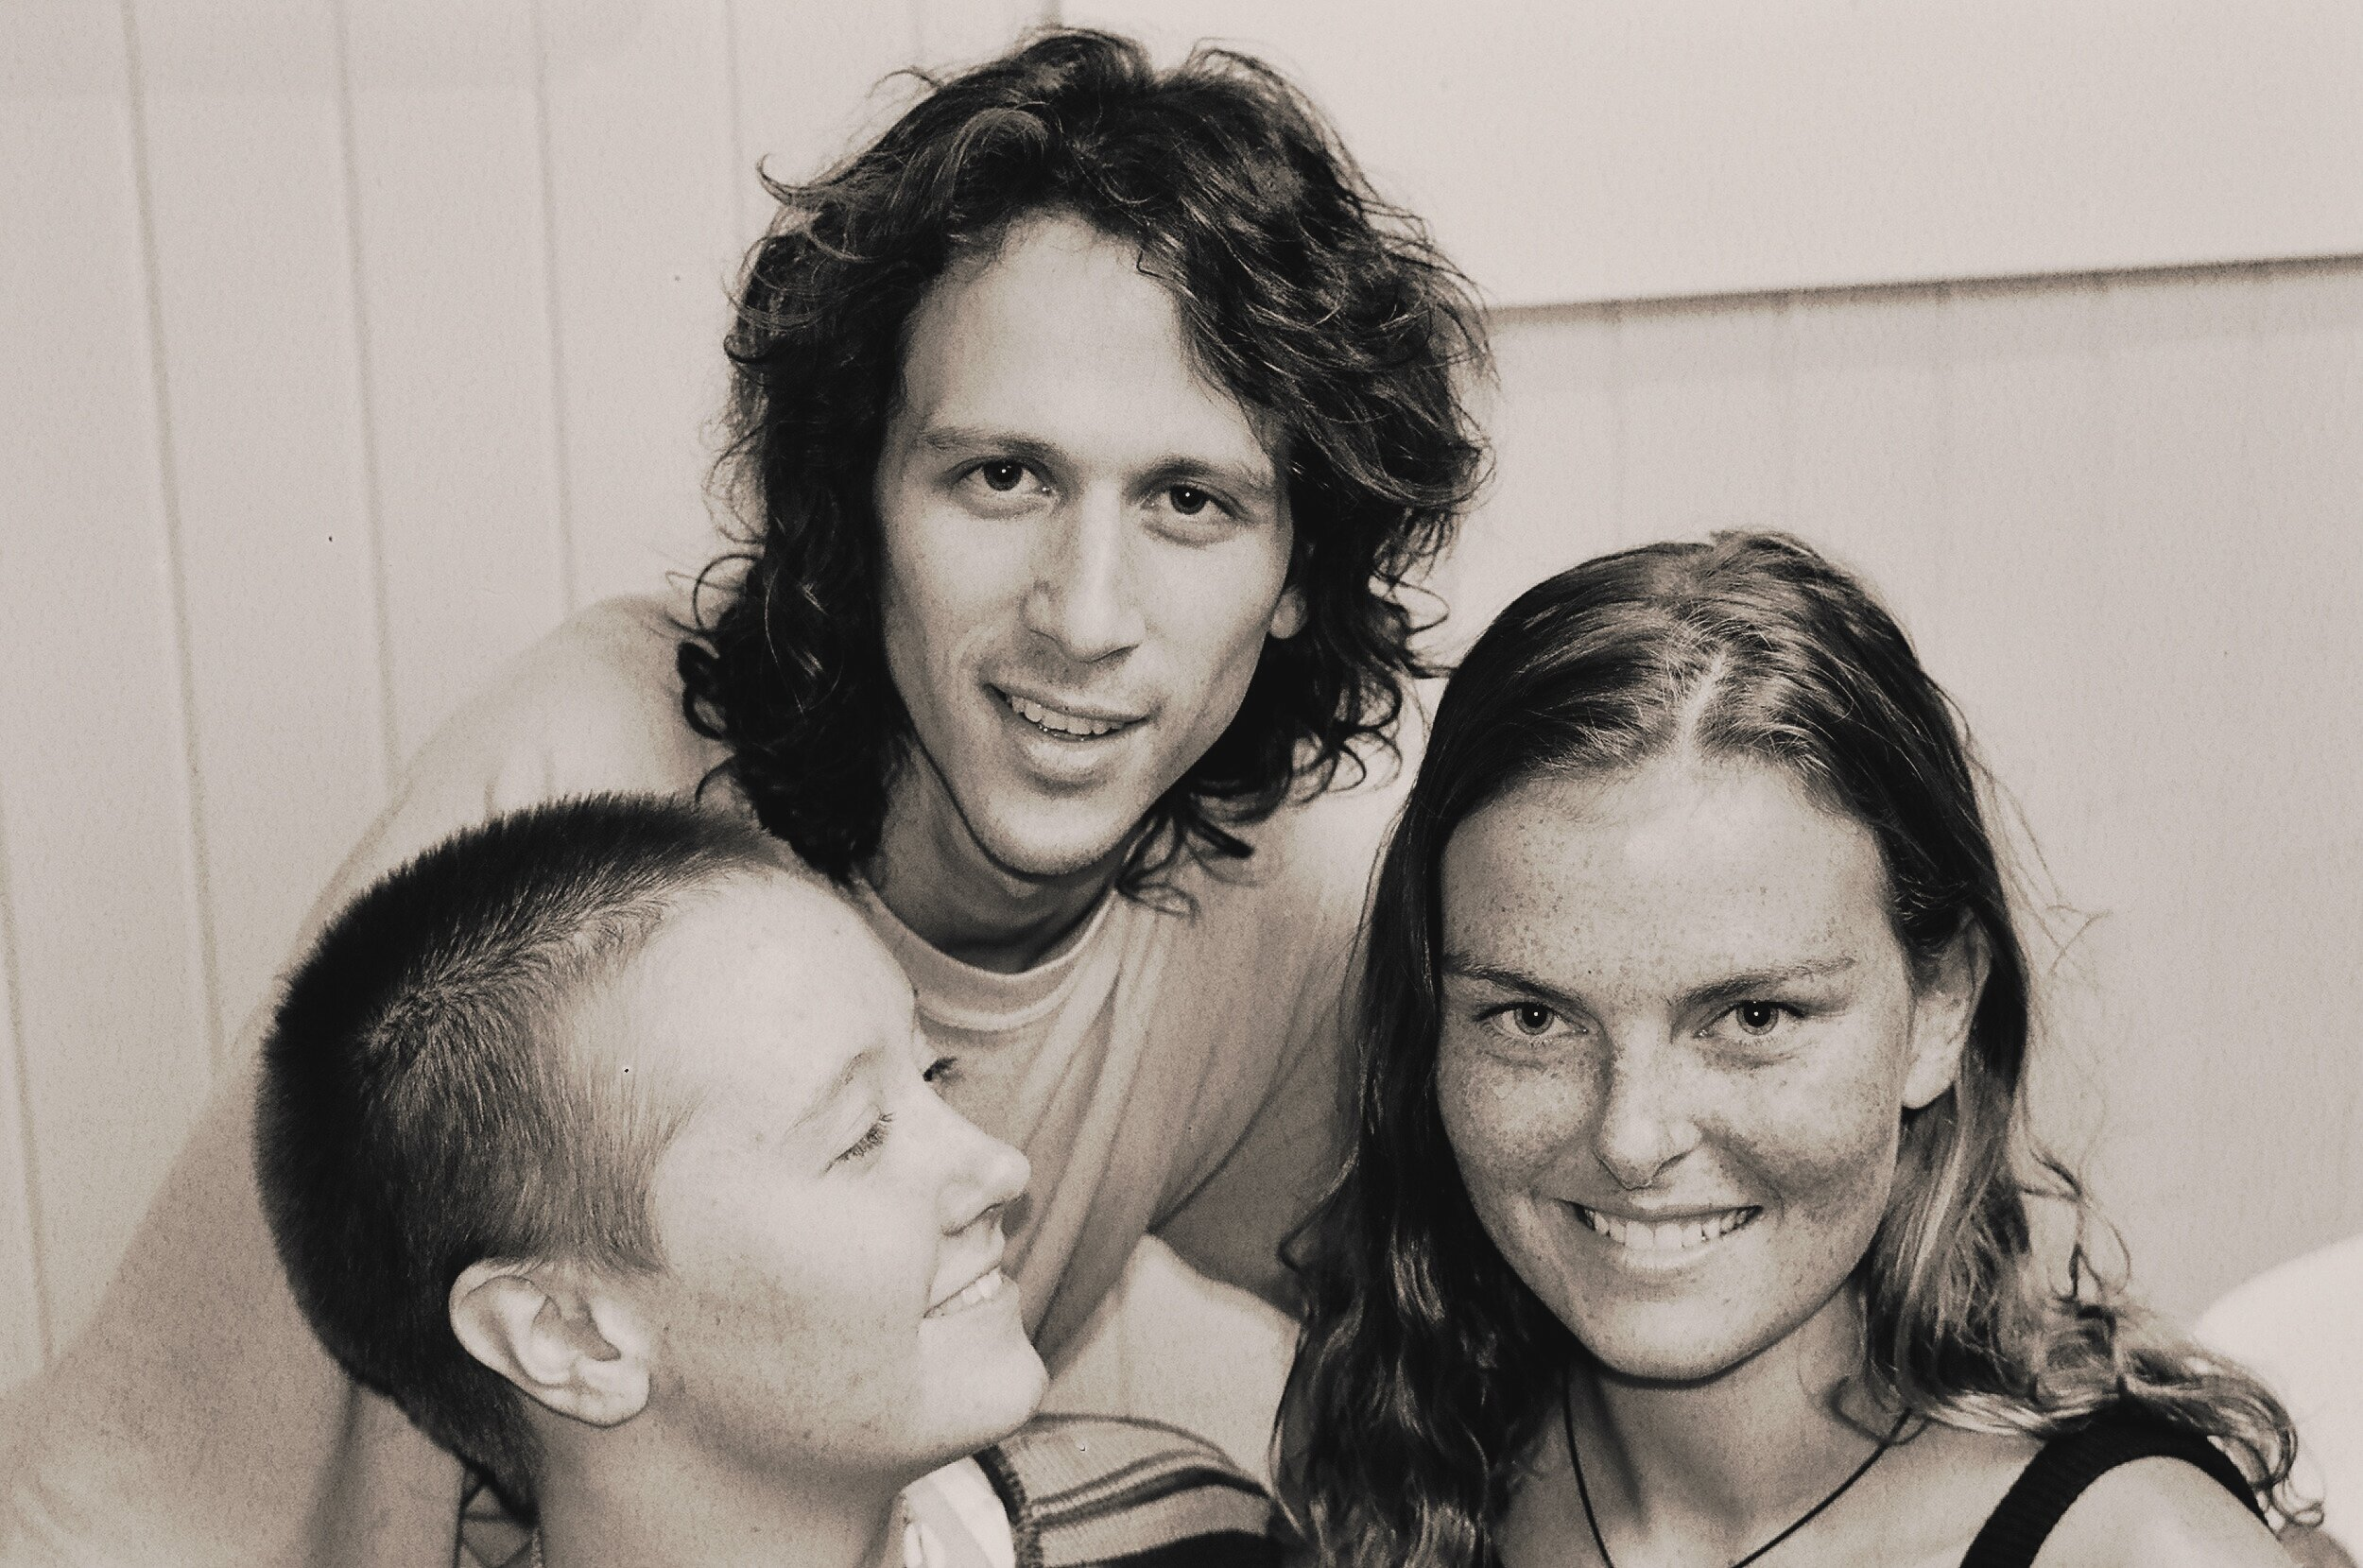 """Renée Loux, Christopher Fishkin, and Me at """"THE RAW EXPERIENCE Restaurant,"""" Paia, Maui, CIrca 1998 (Photo Credit: Bud Clifton)"""